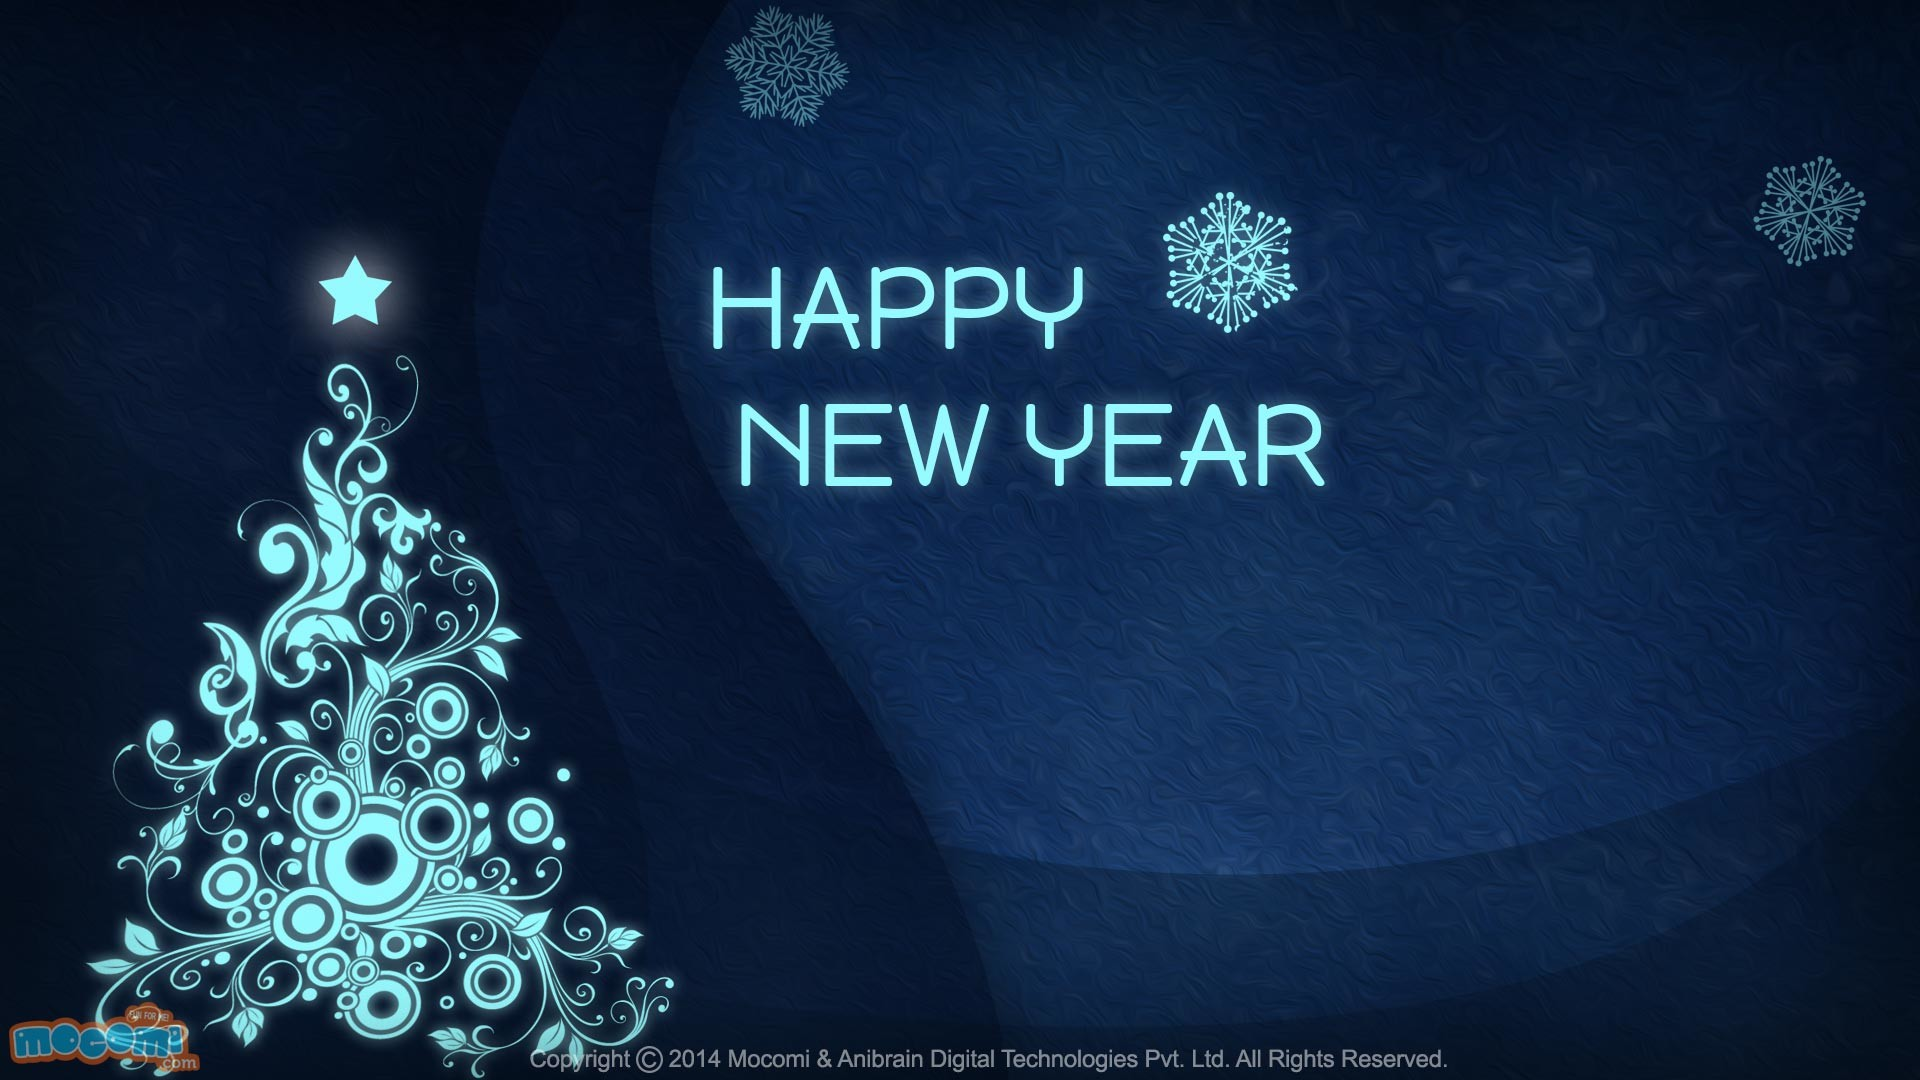 New Year Wallpapers For Desktop 60 Images